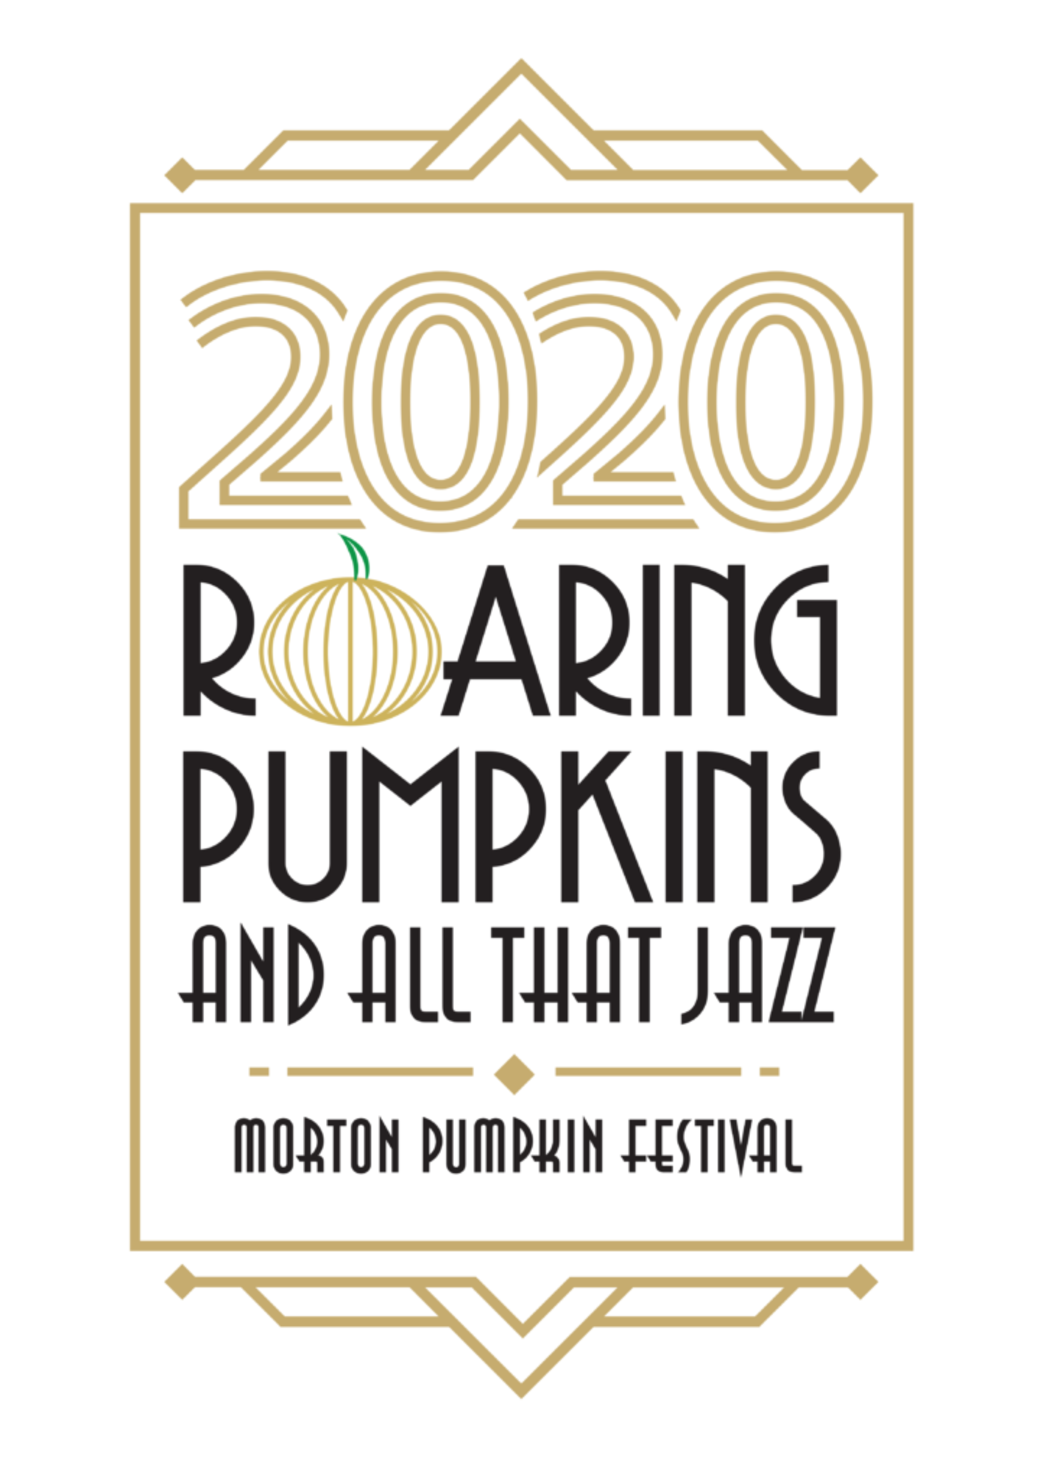 2020 Roaring Pumpkins and All That Jazz